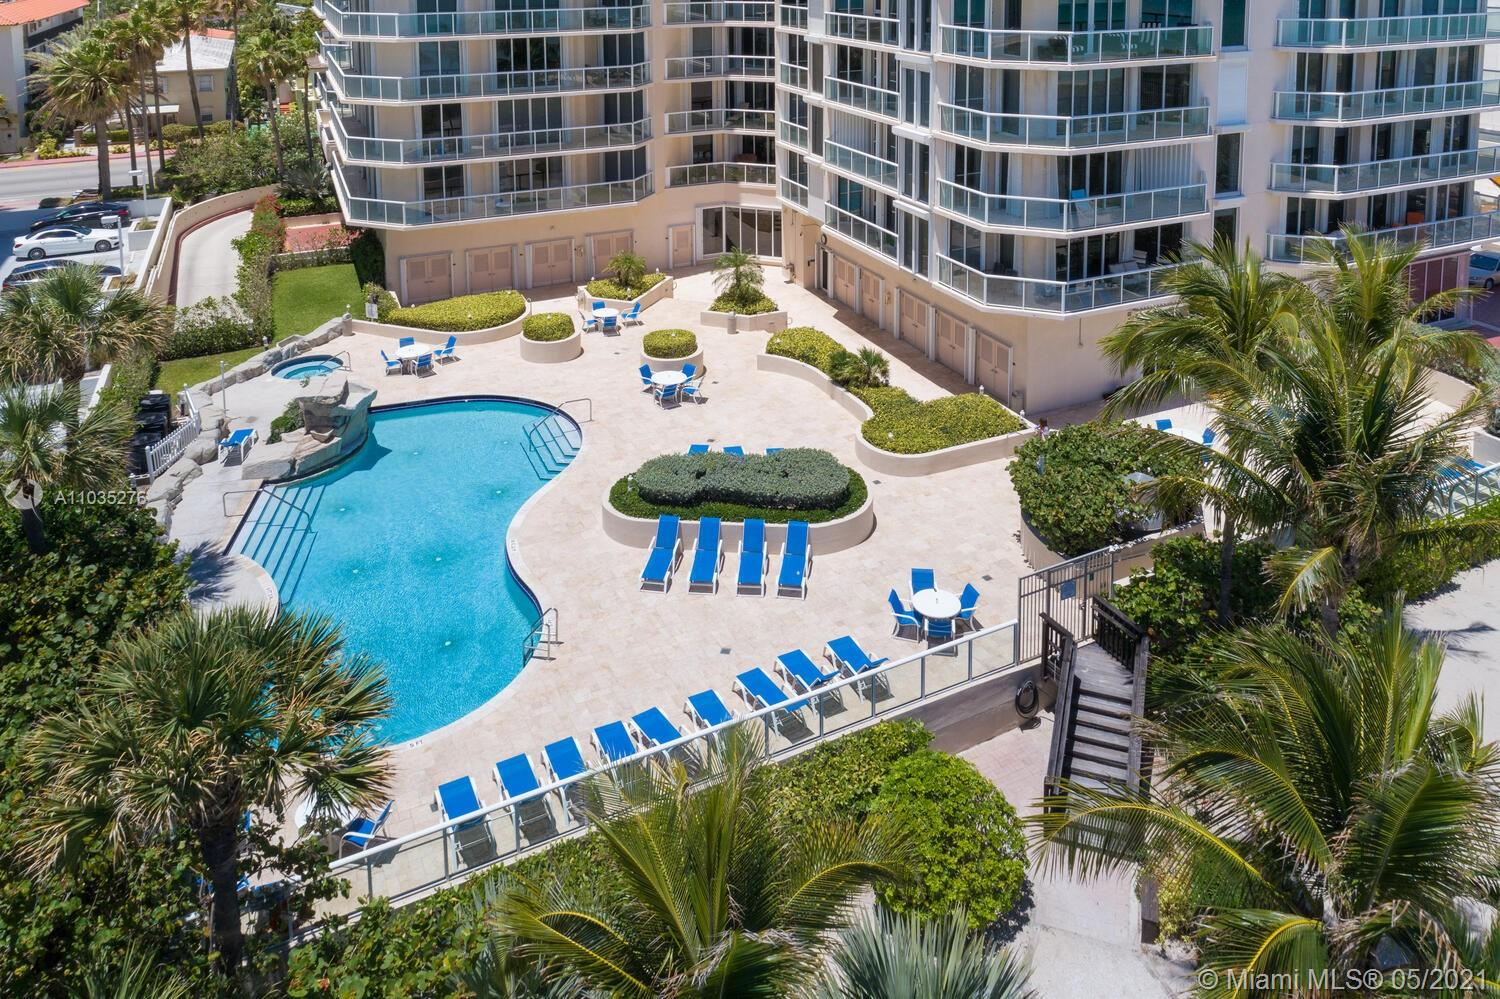 Photo of 8925 Collins Ave #4F, Surfside, Florida, 33154 - Aerial view (prior to construction of Arte).